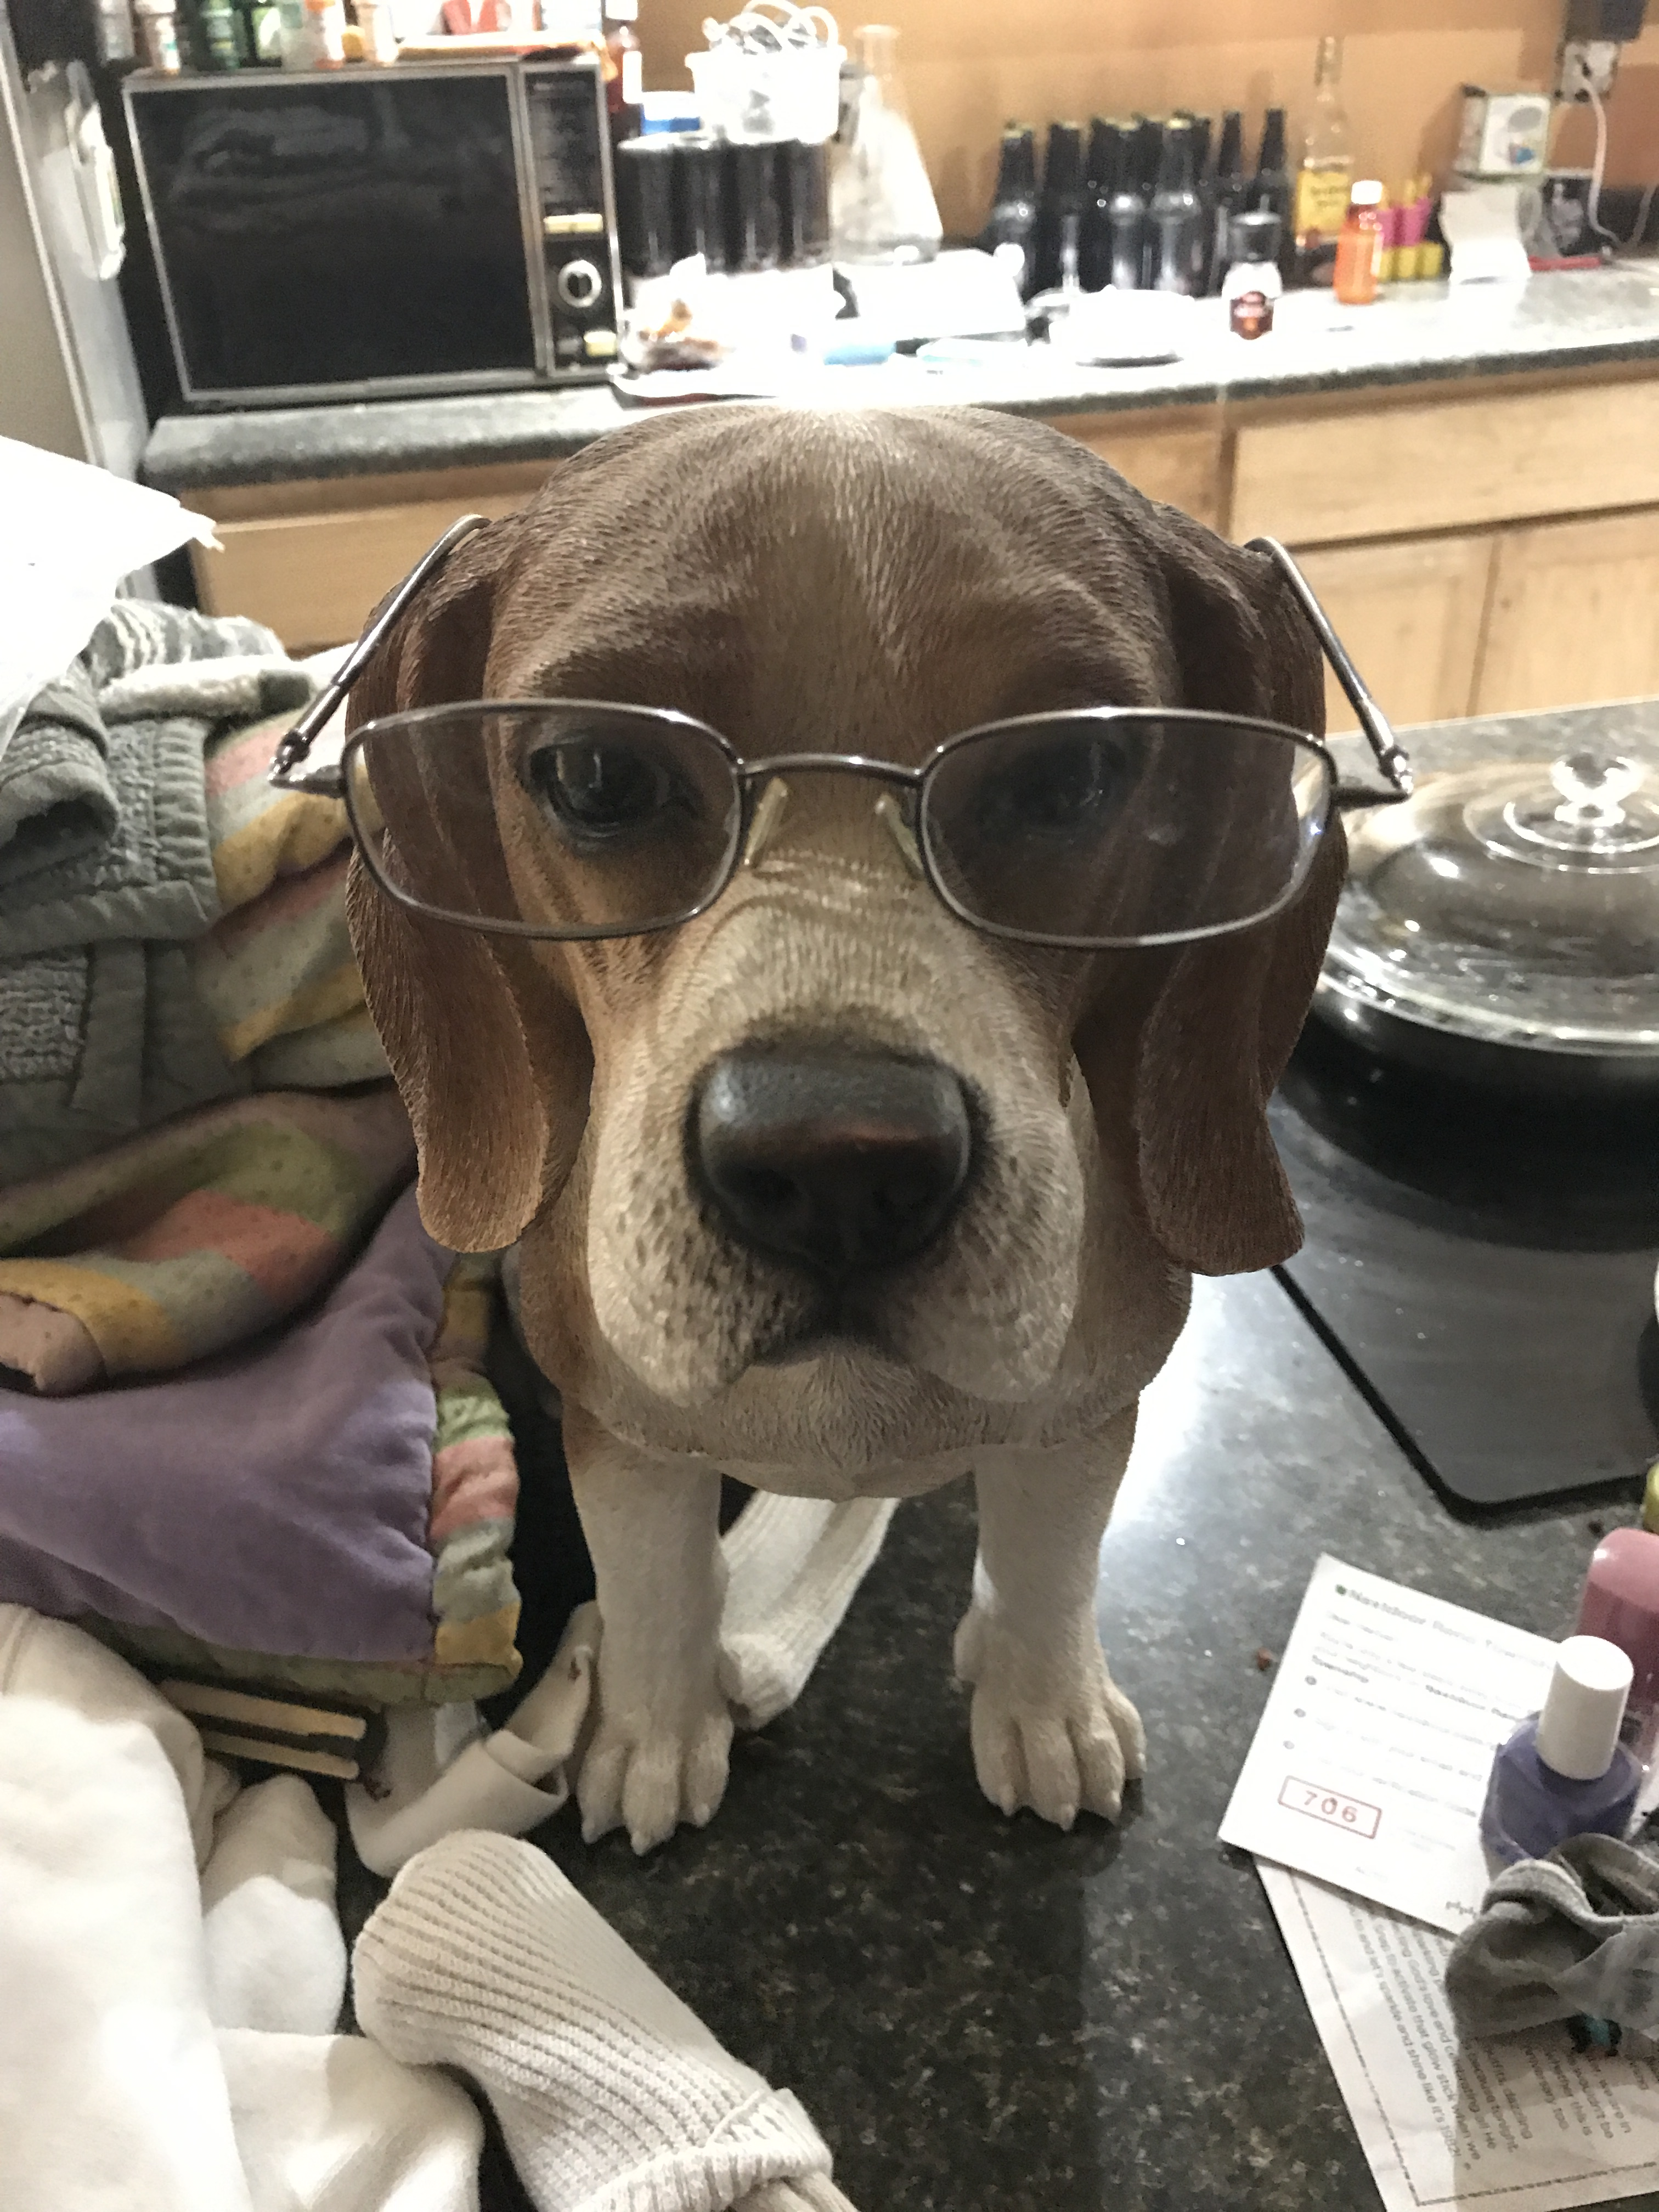 Polly with glasses